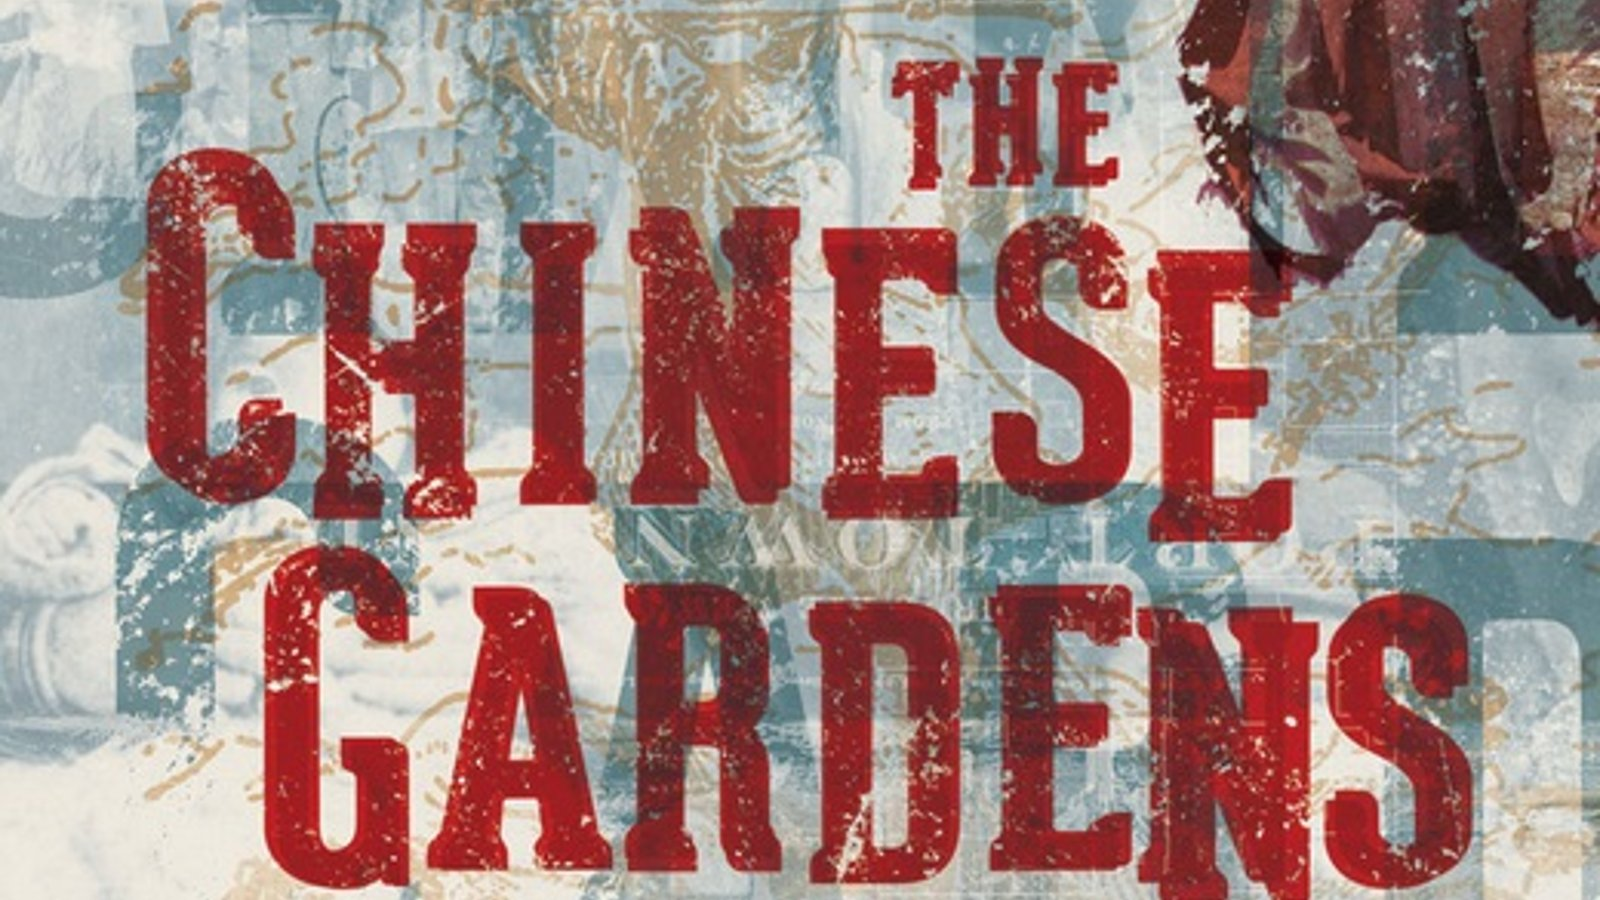 The Chinese Gardens